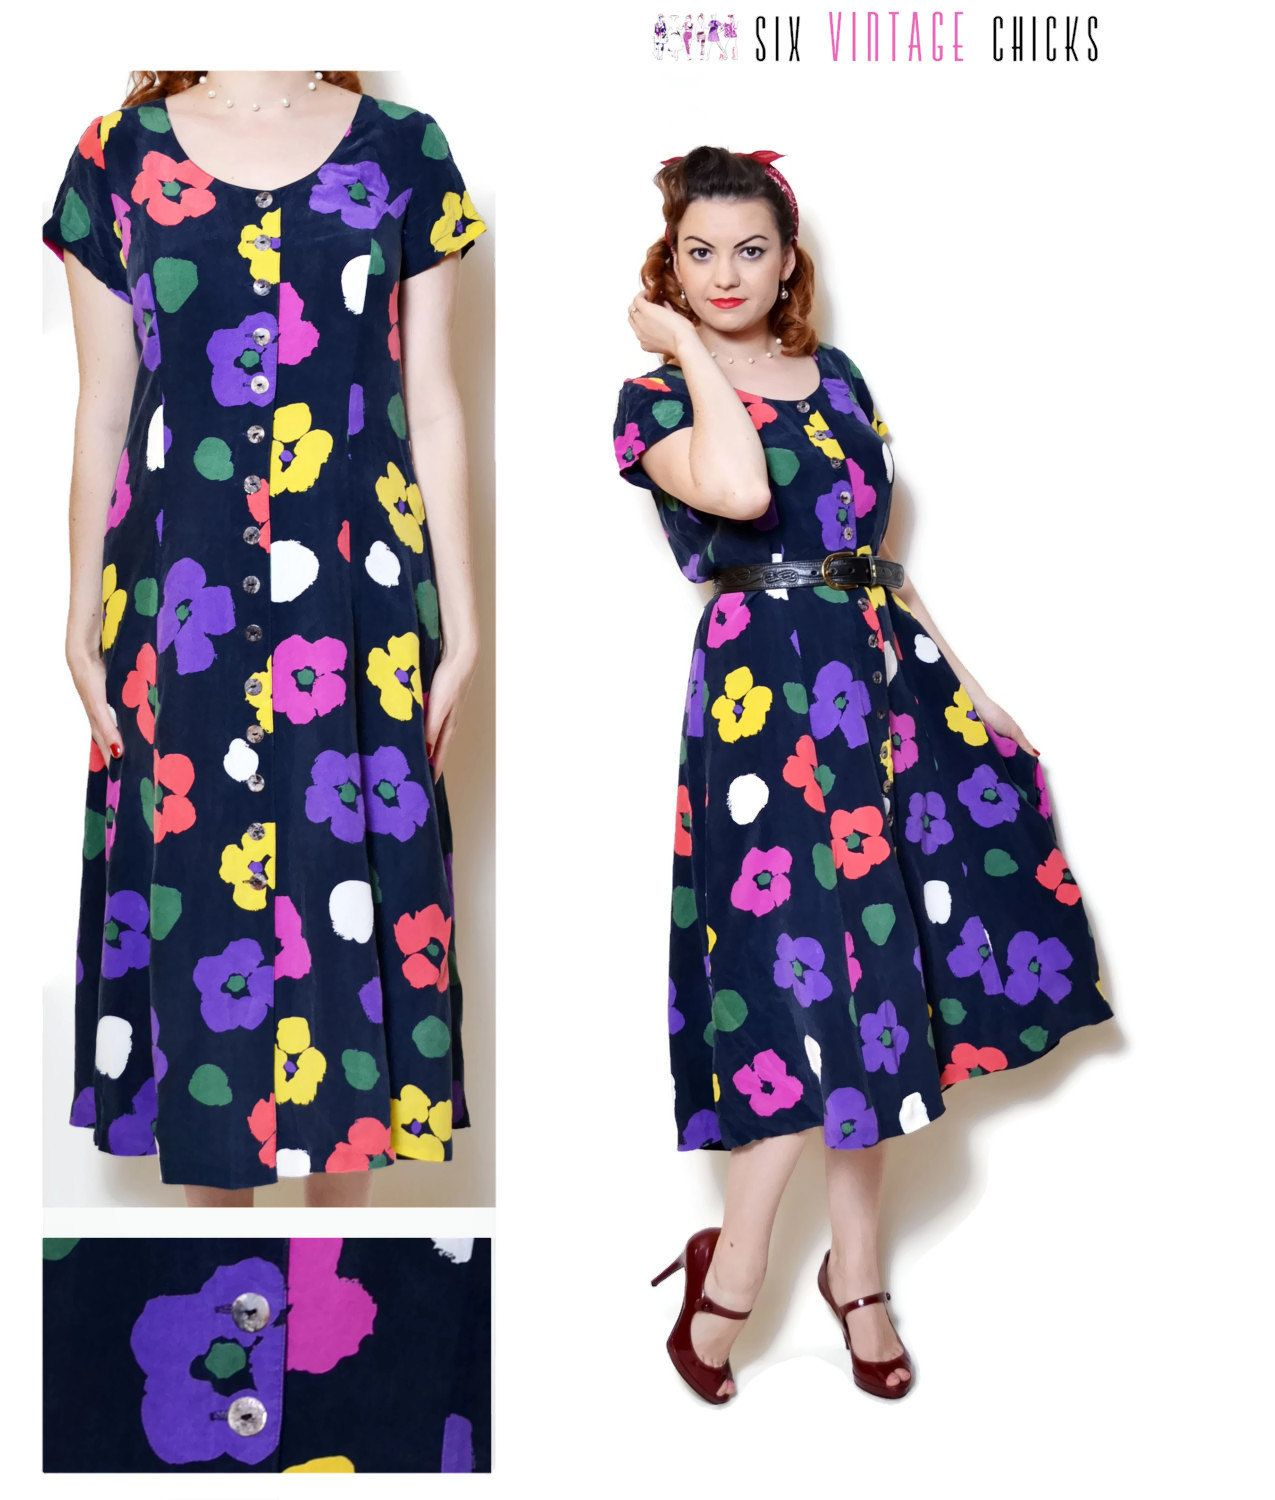 7bcac008b floral Dress women casual summer dresses hippie clothes sexy gifts vintage  clothing boho chic button down dress short sleeve 90s midi L by  SixVintageChicks ...